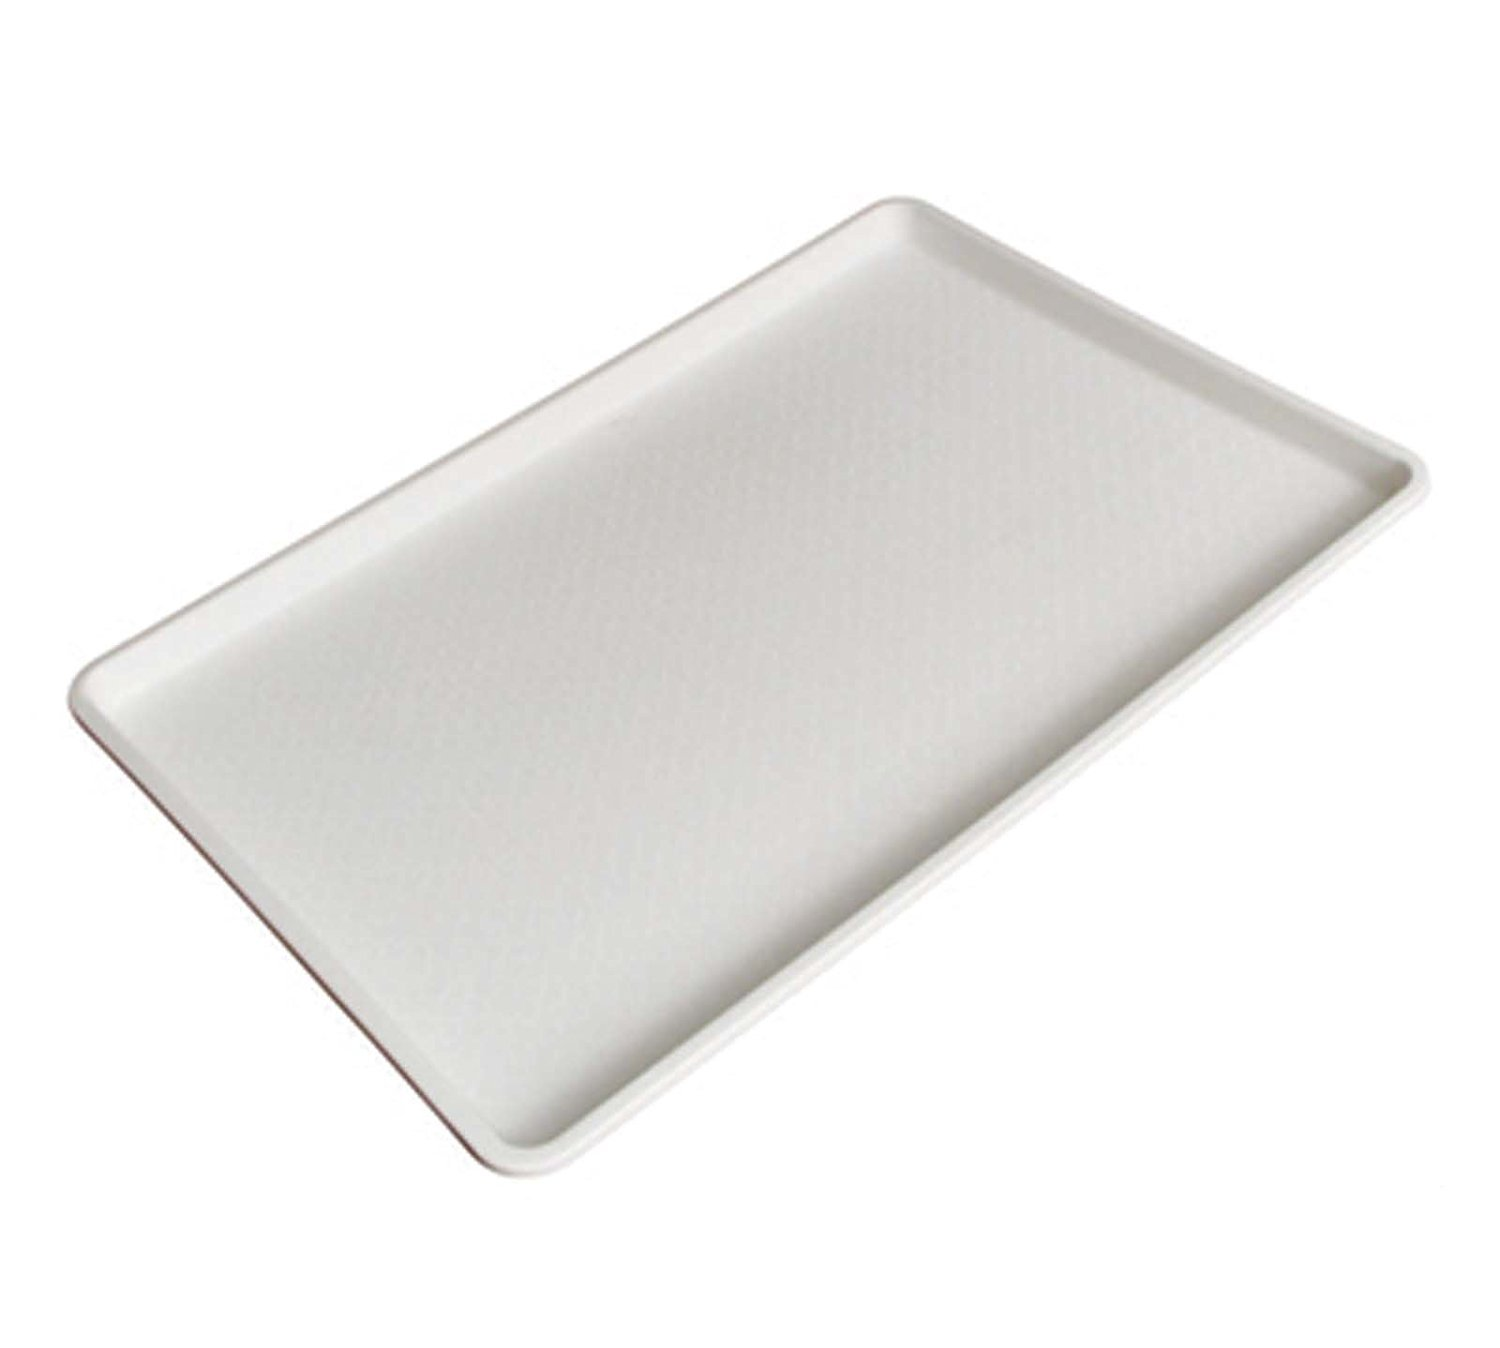 18 by 26 Inch Winco Plastic Tray White, Set of 6